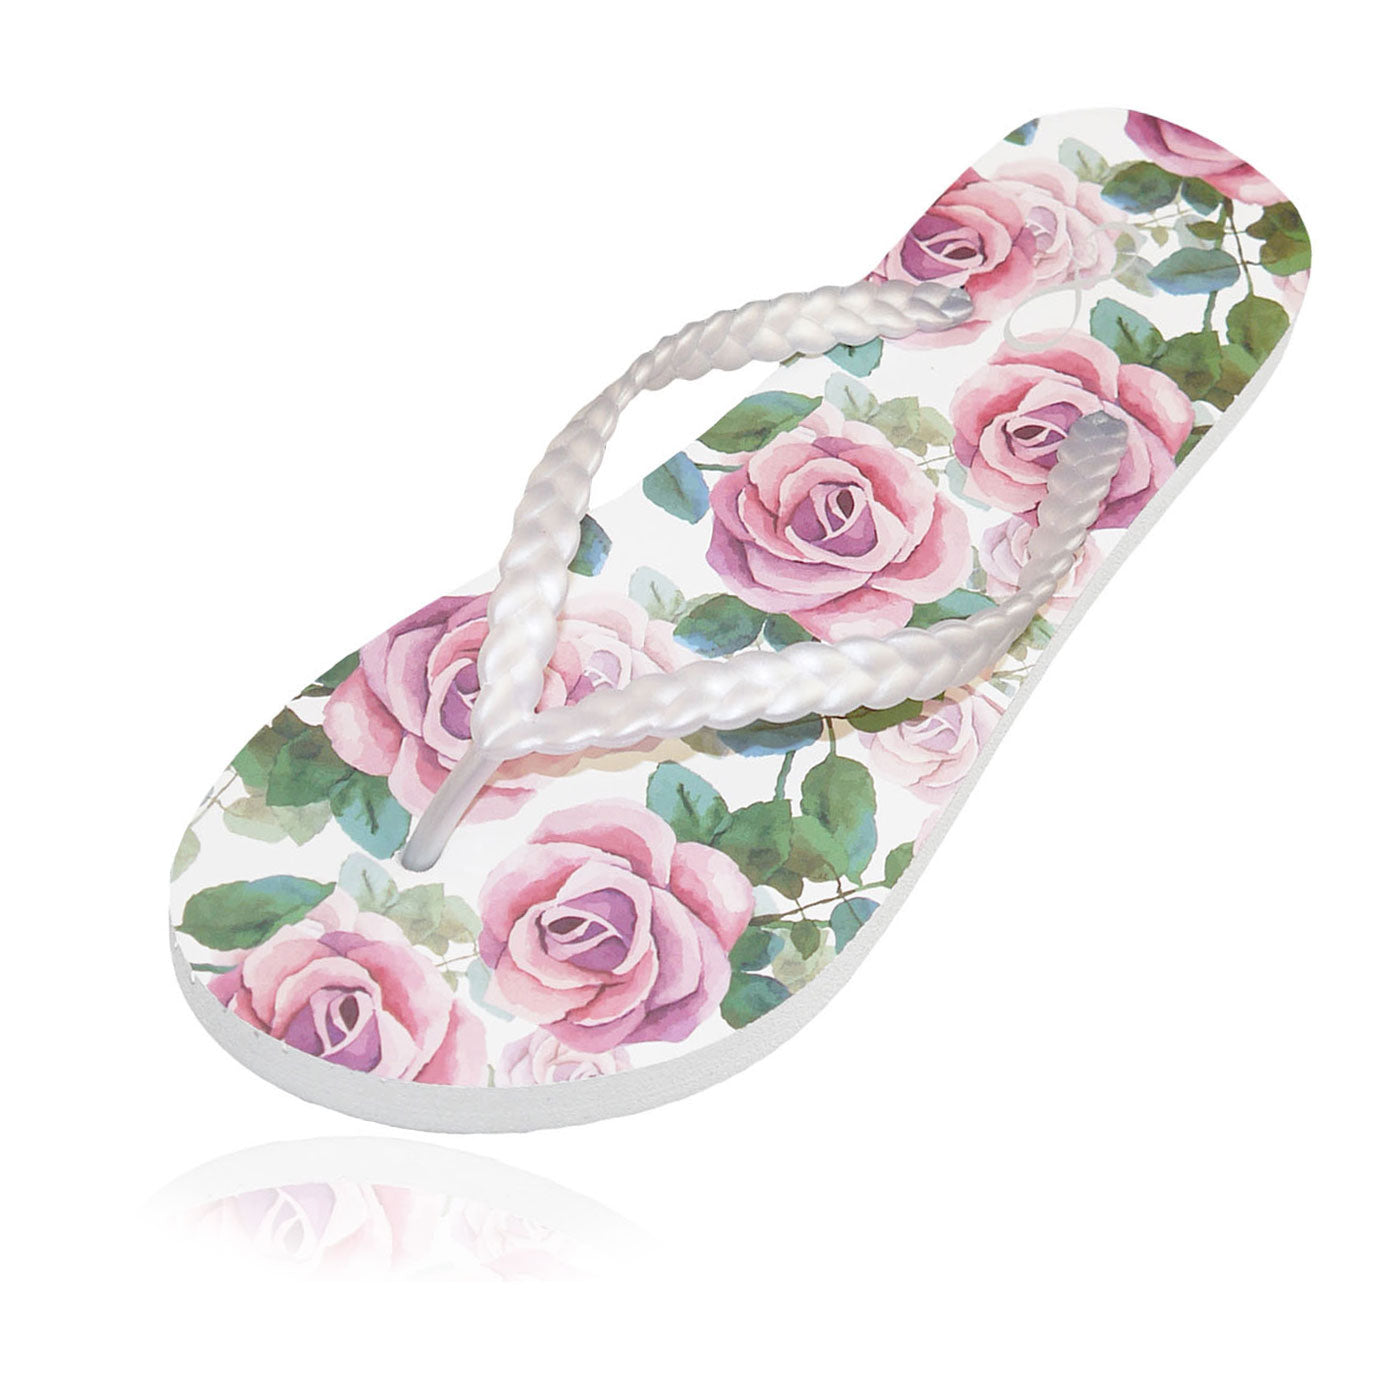 20 pairs of pink rose flip flops in a personalized crate